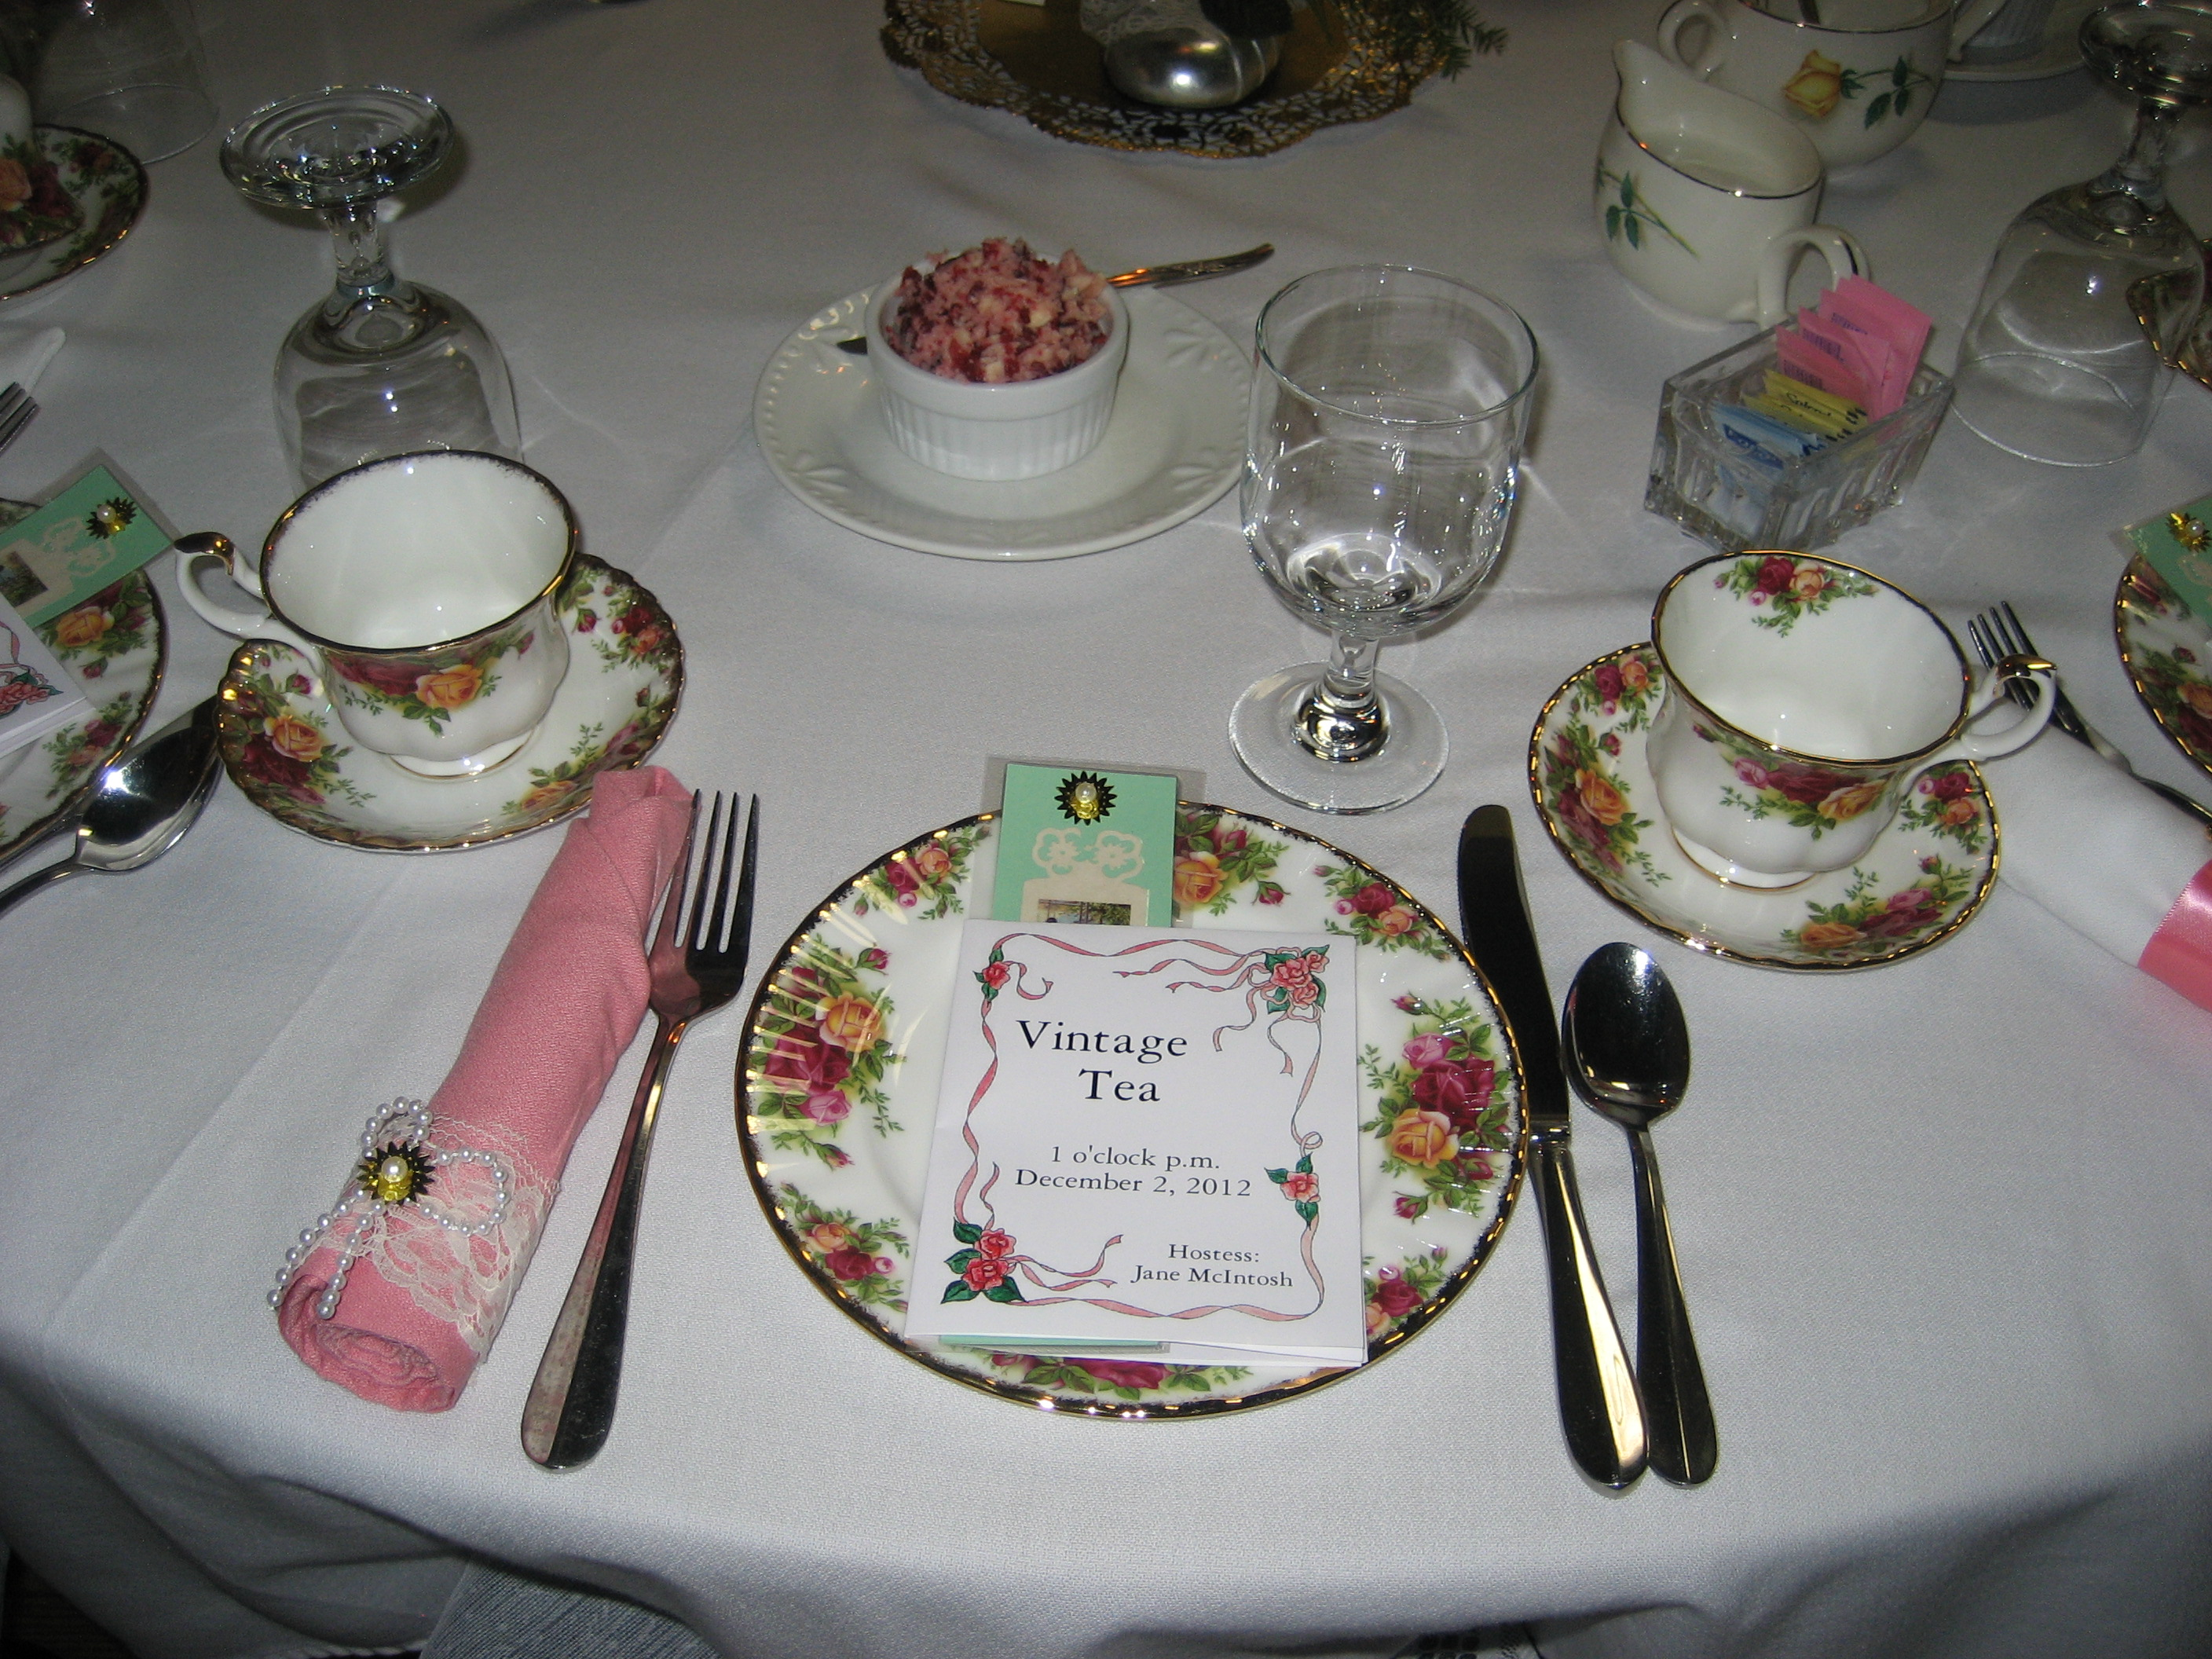 Vintage Tea Table Setting & Vintage Tea Table Setting | REM